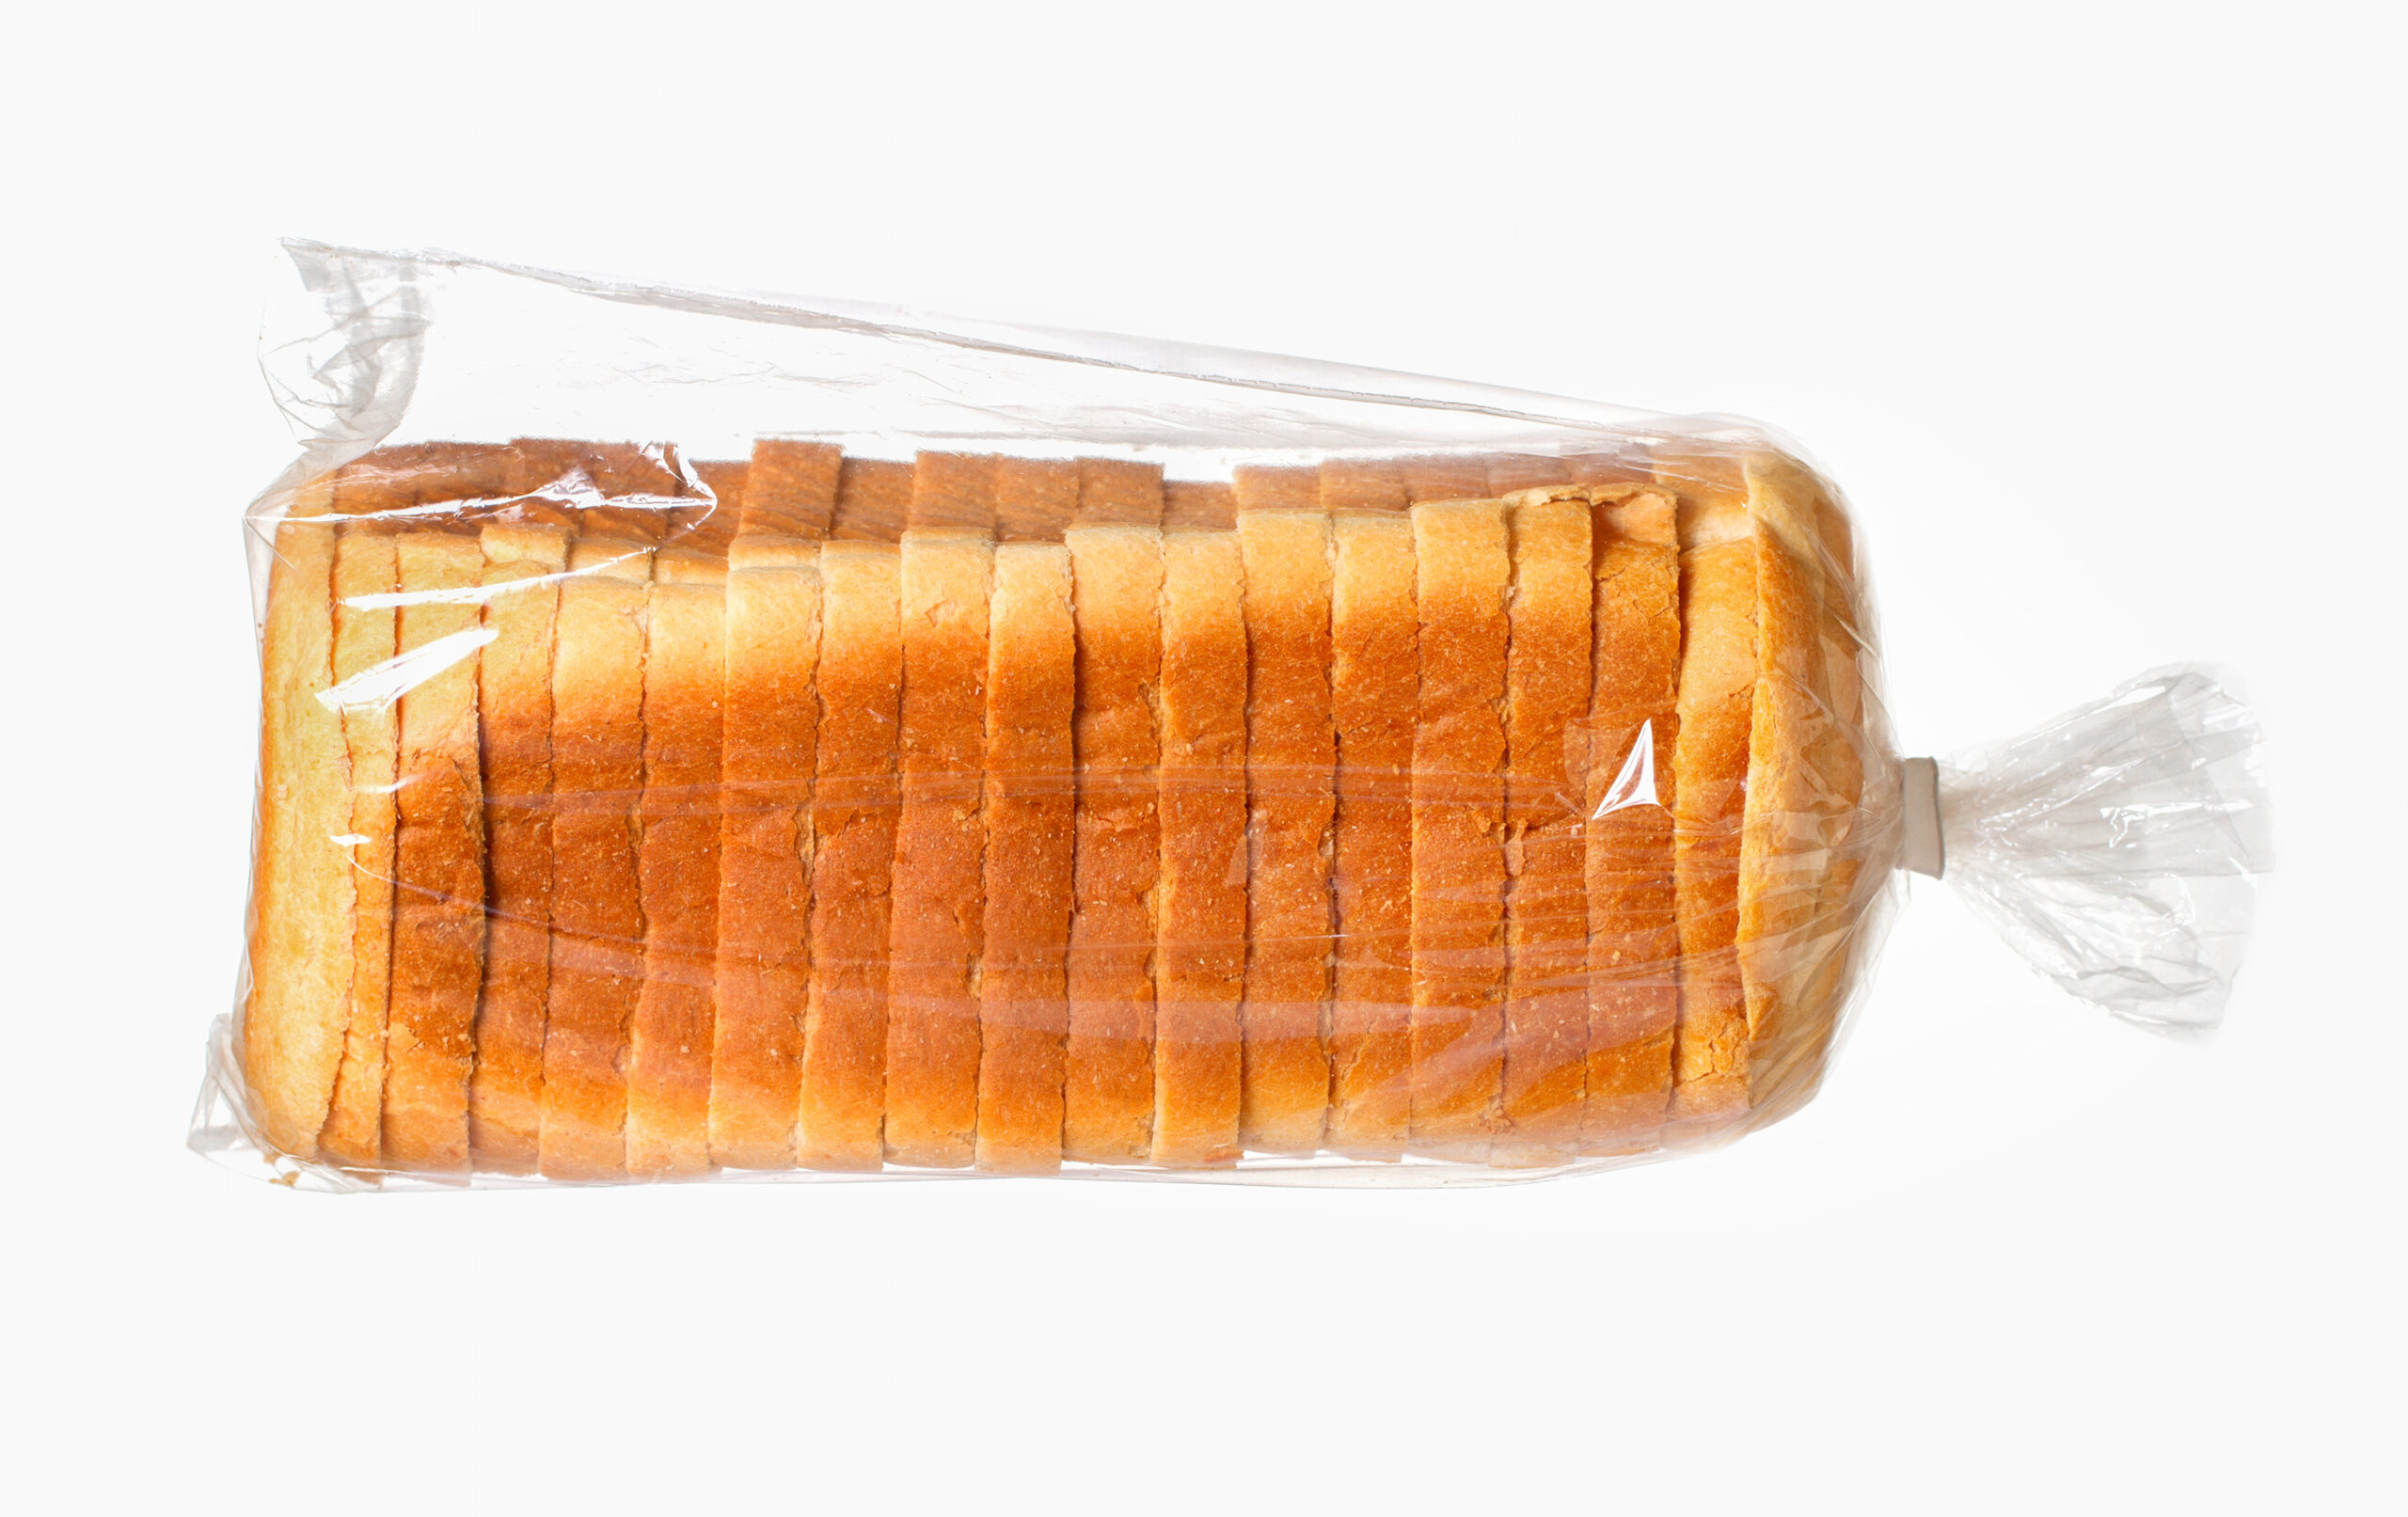 Sliced bread on white surface.